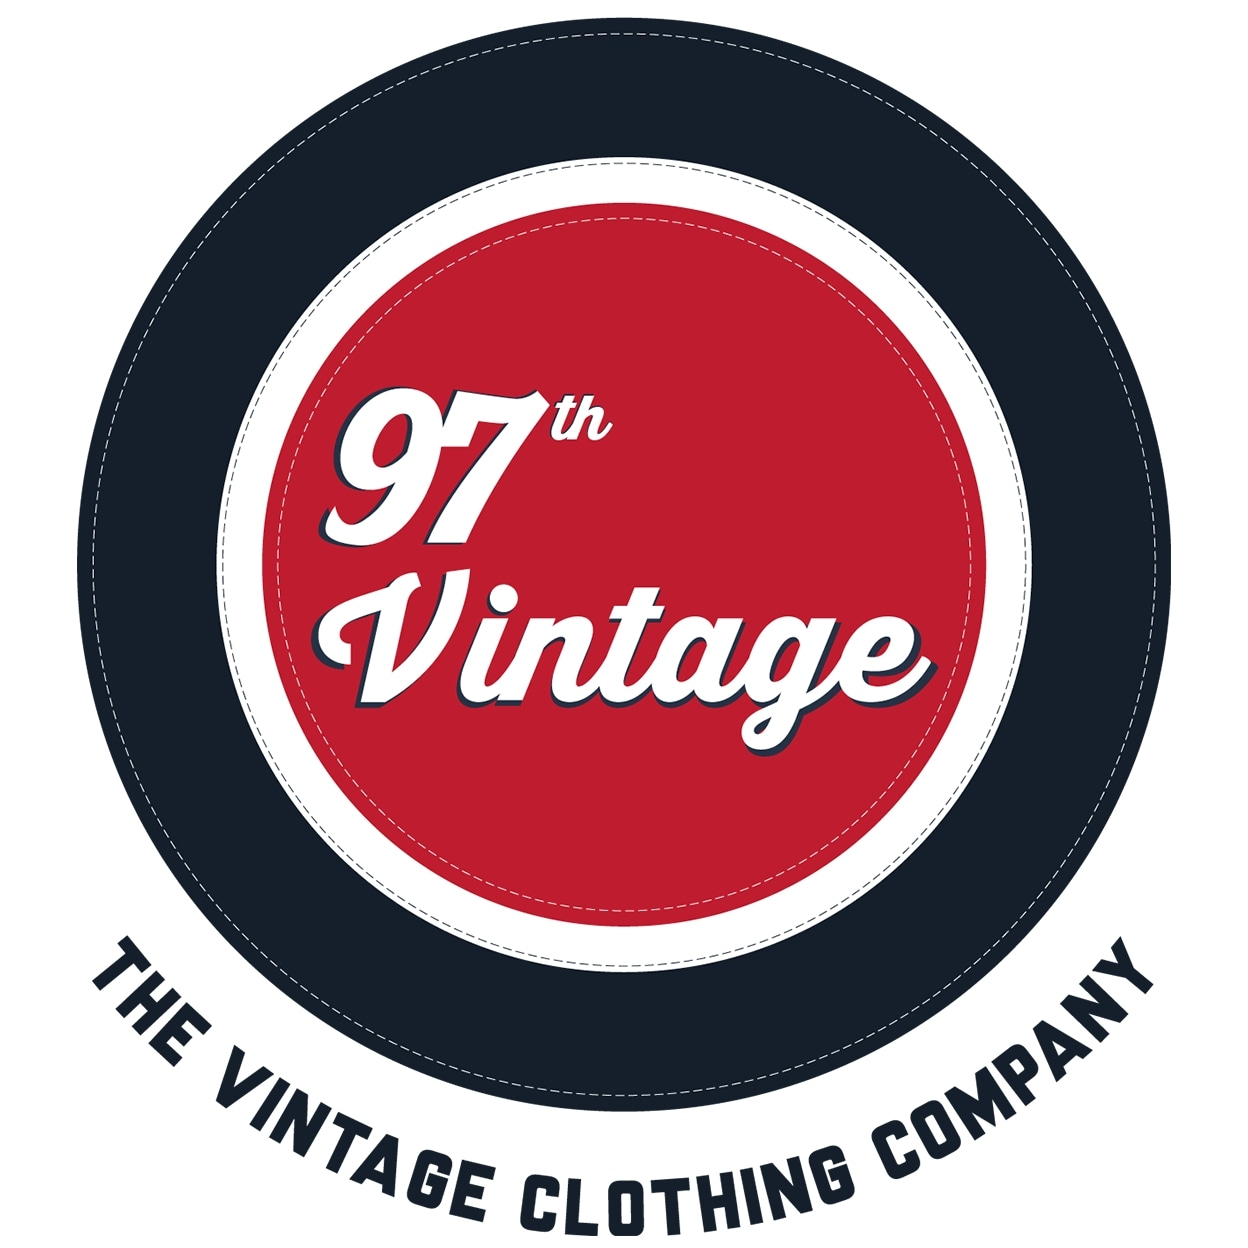 97th Vintage Clothing